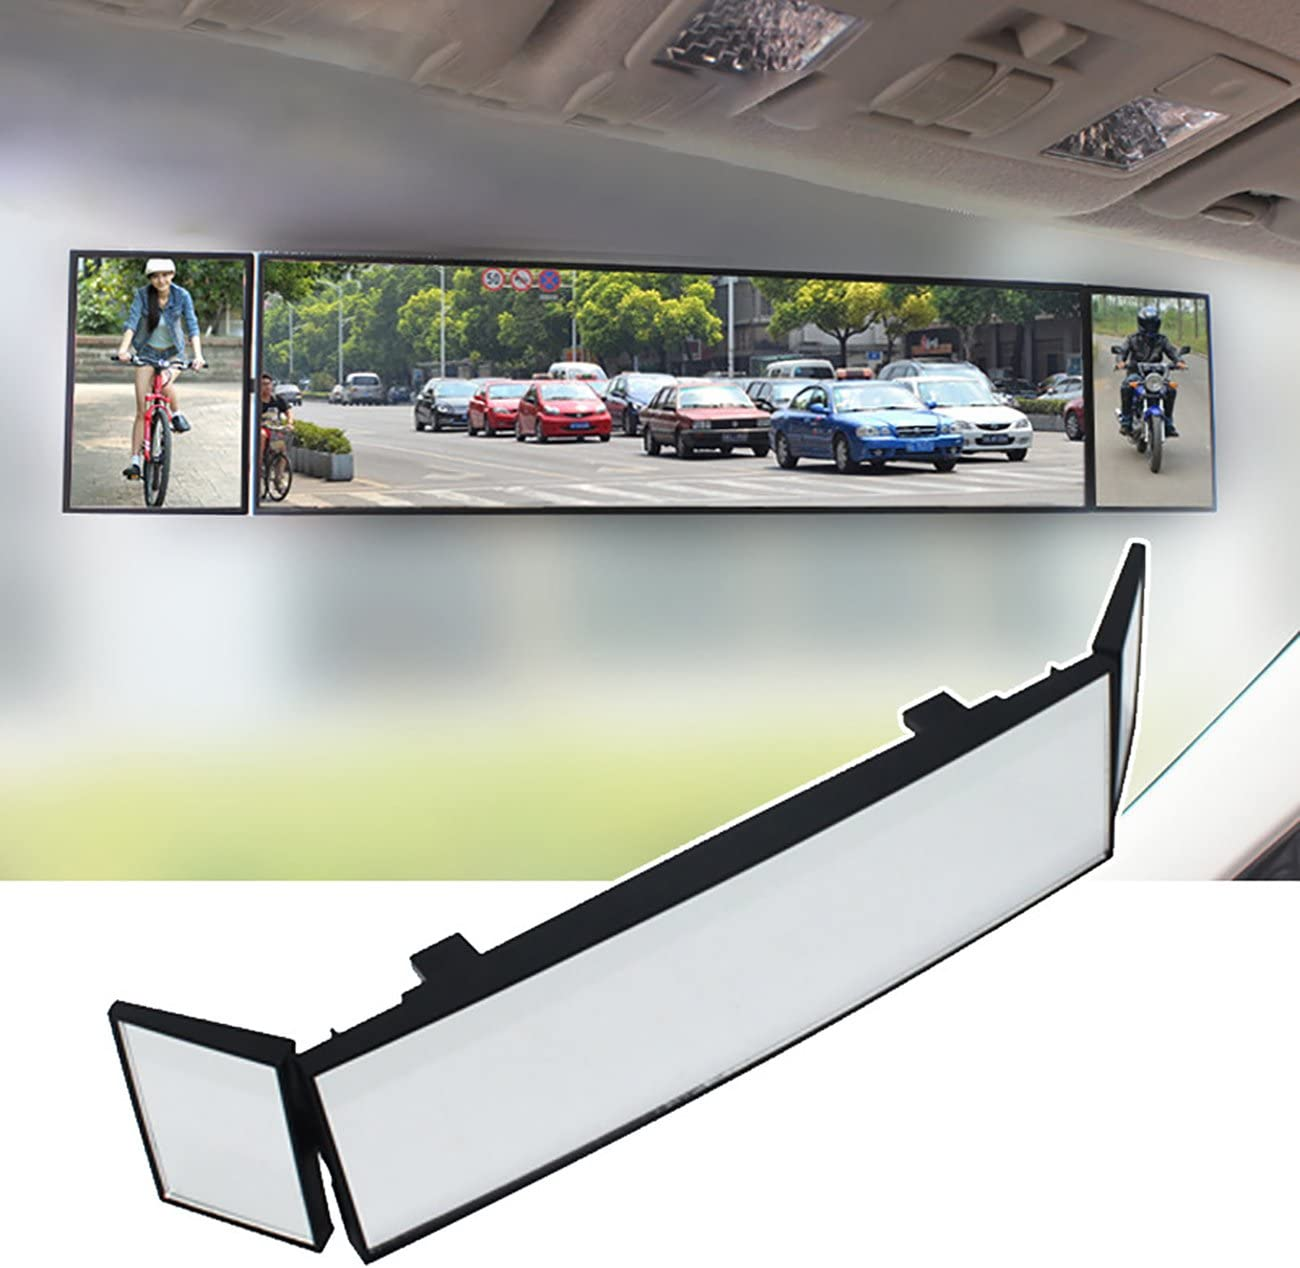 Interior Clip-on Wide Angle Rear View Mirror to Reduce Blind Spot Effectively for more car Universal SUV Trucks Panoramic Convex Rearview Mirror JoyTutus Rear View Mirror 11.81